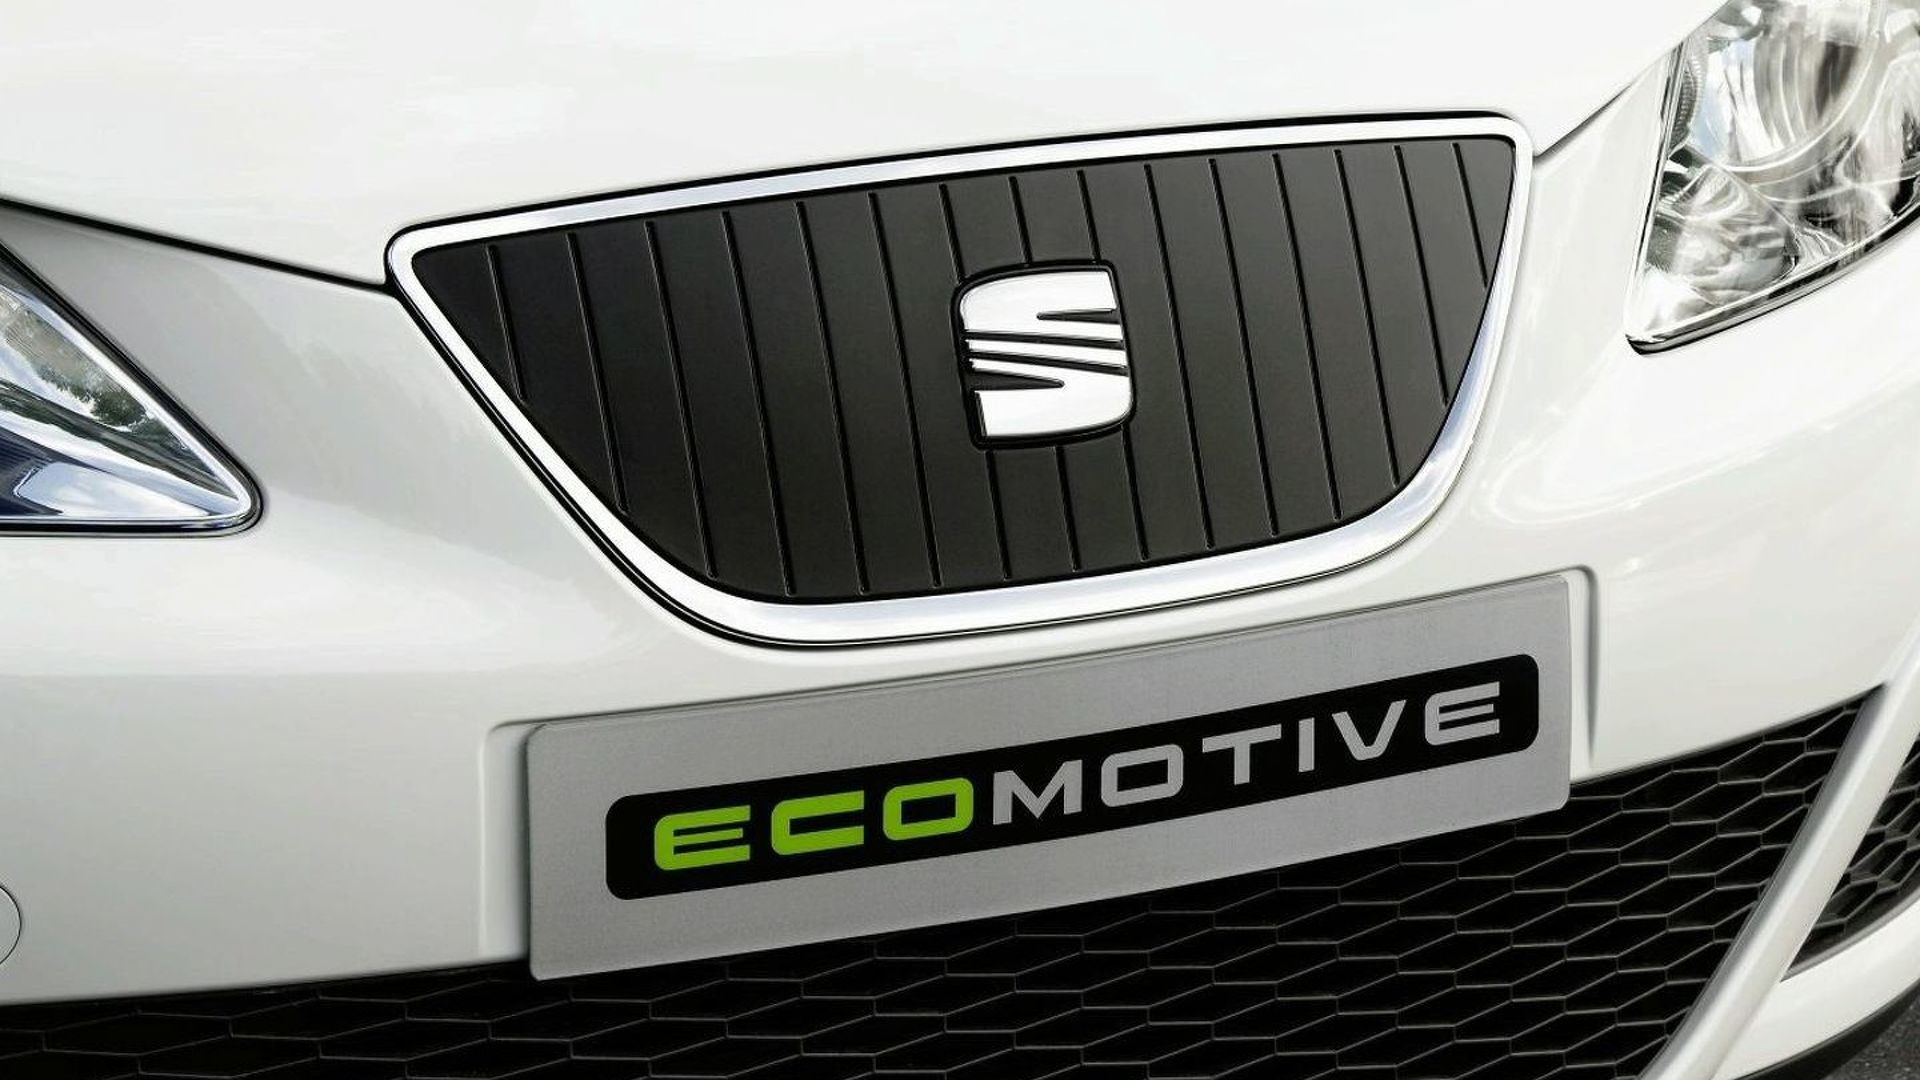 Seat Ibiza ECOMOTIVE Headed for Paris